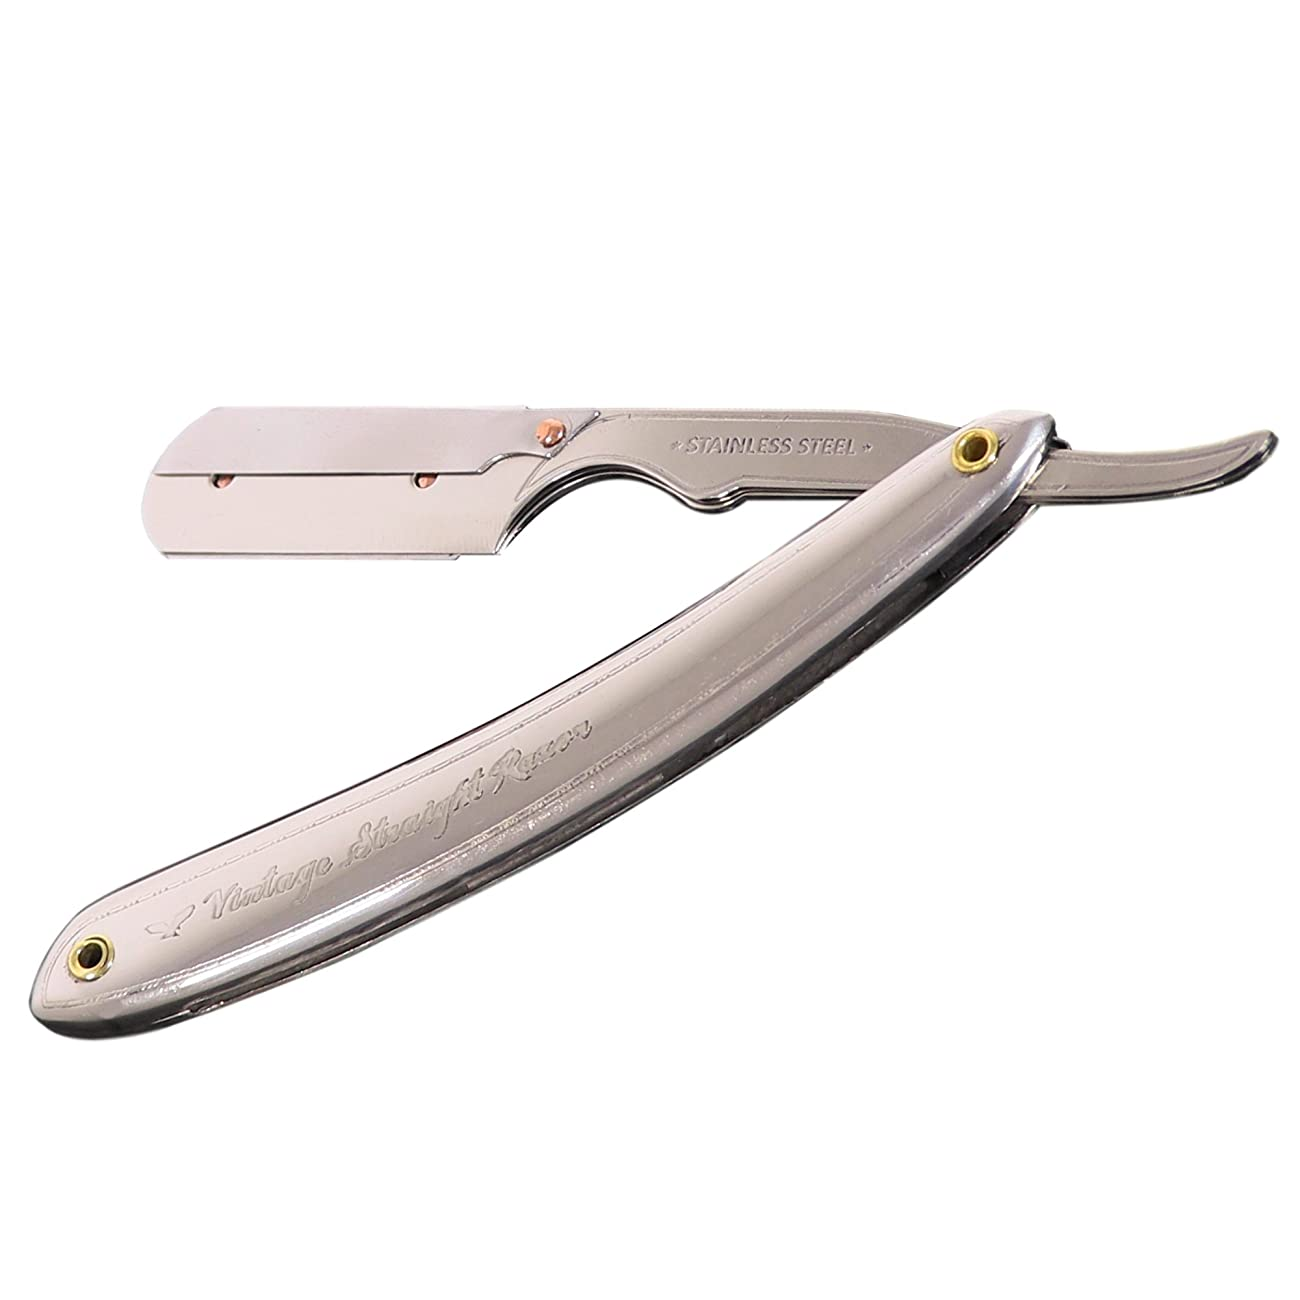 Vintage Straight Razor For Men - Shave Like A Man With A Stainless Steel Straight Edge Razor - Reduce Ingrown Hairs Razor Bumps And Burns - Includes 5 Shark Super Stainless Blades 0